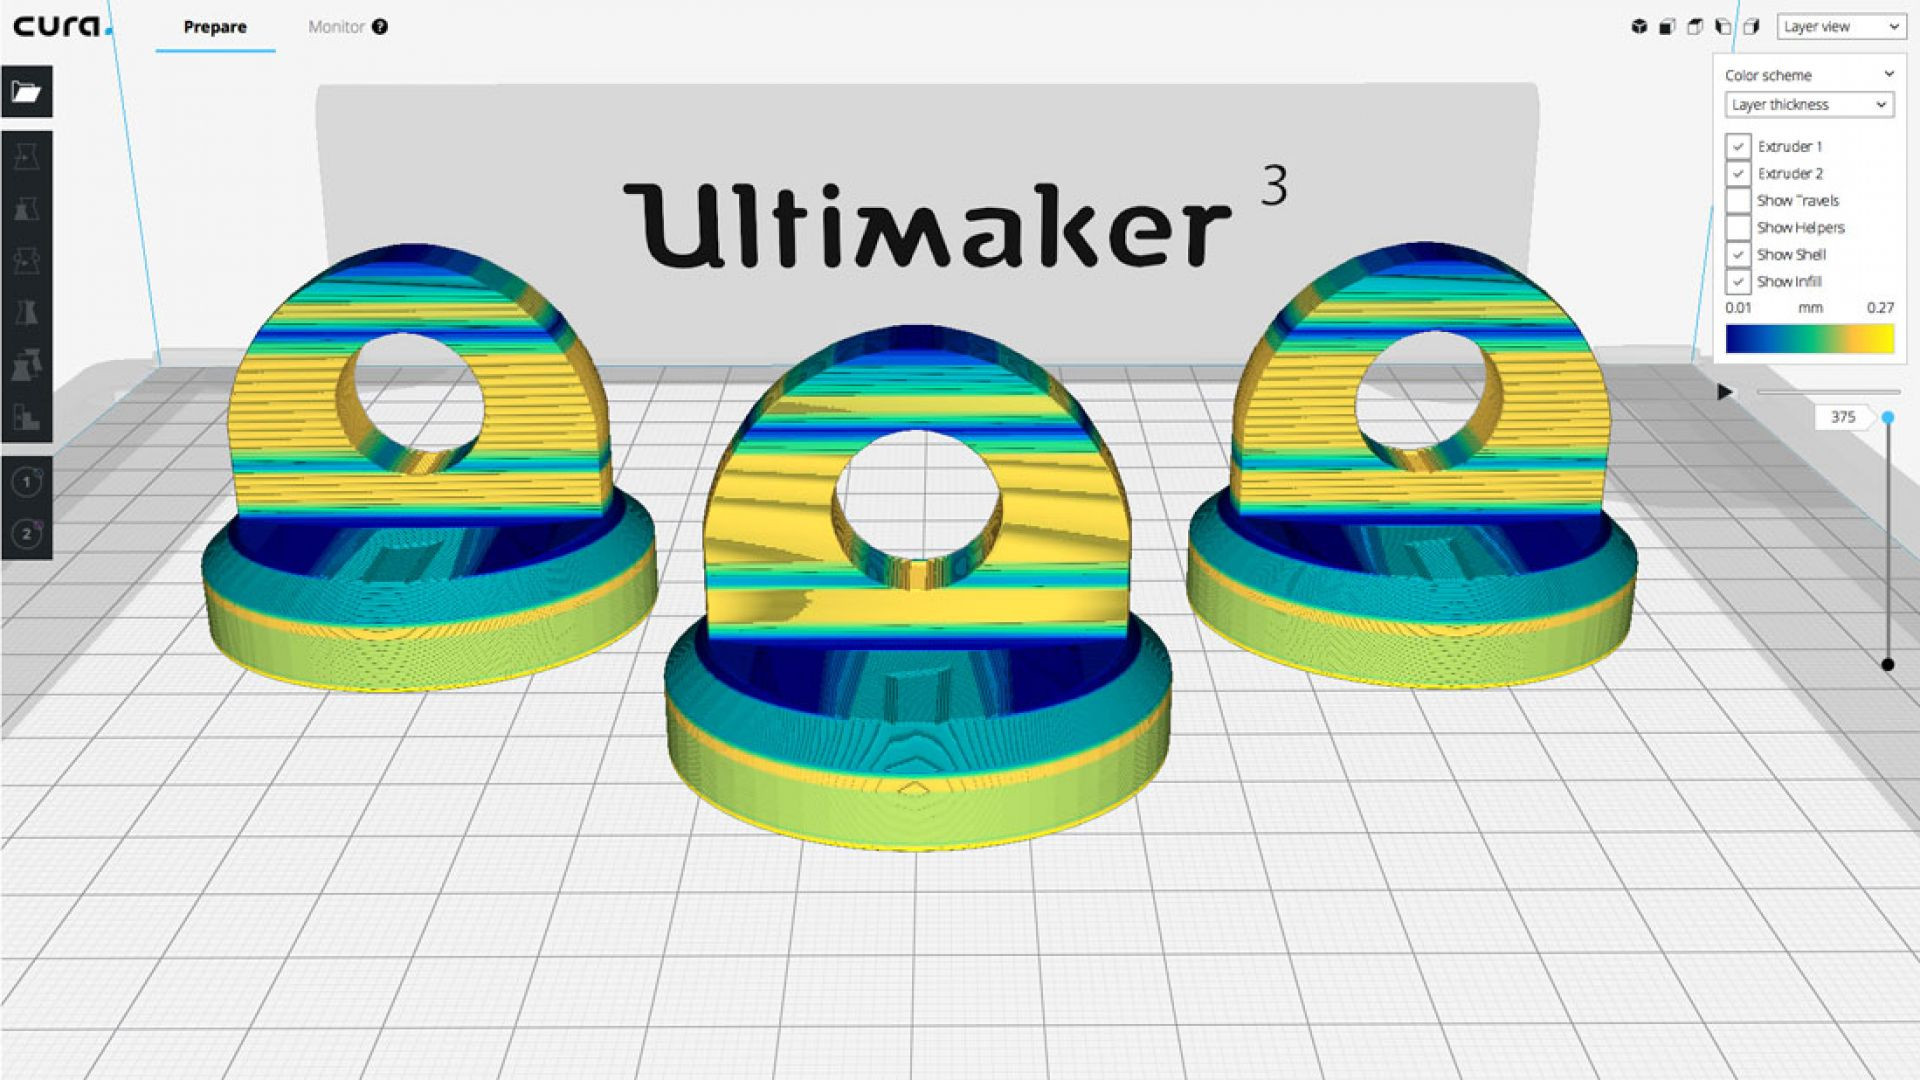 Ultimaker Cura 3.2 Adds Experimental Supports and Layer Features, Improves UI | All3DP